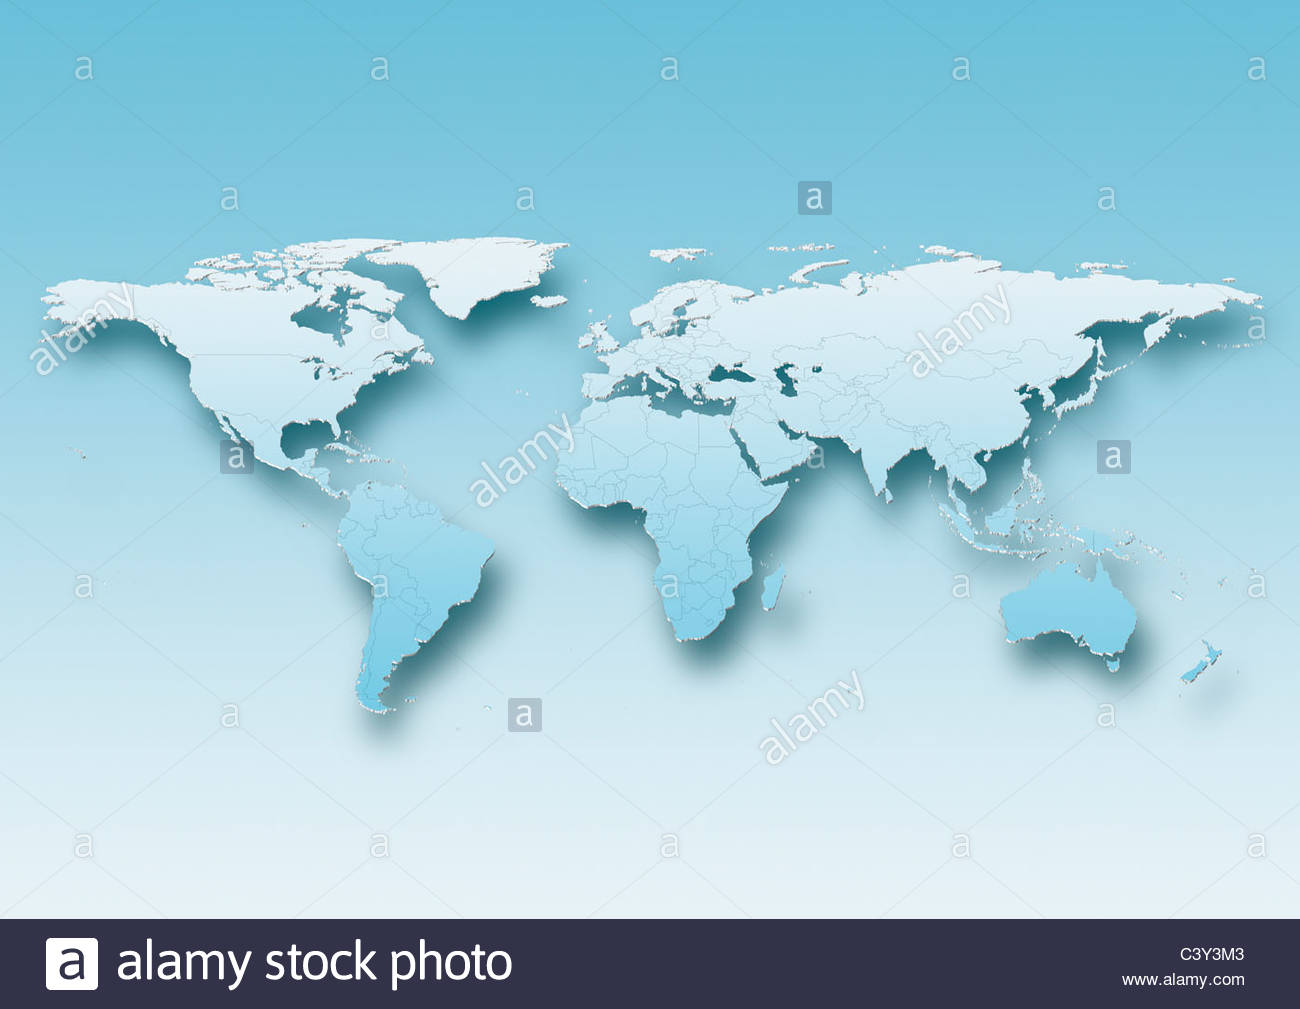 map, world, europe centered, blue, political - Stock Image